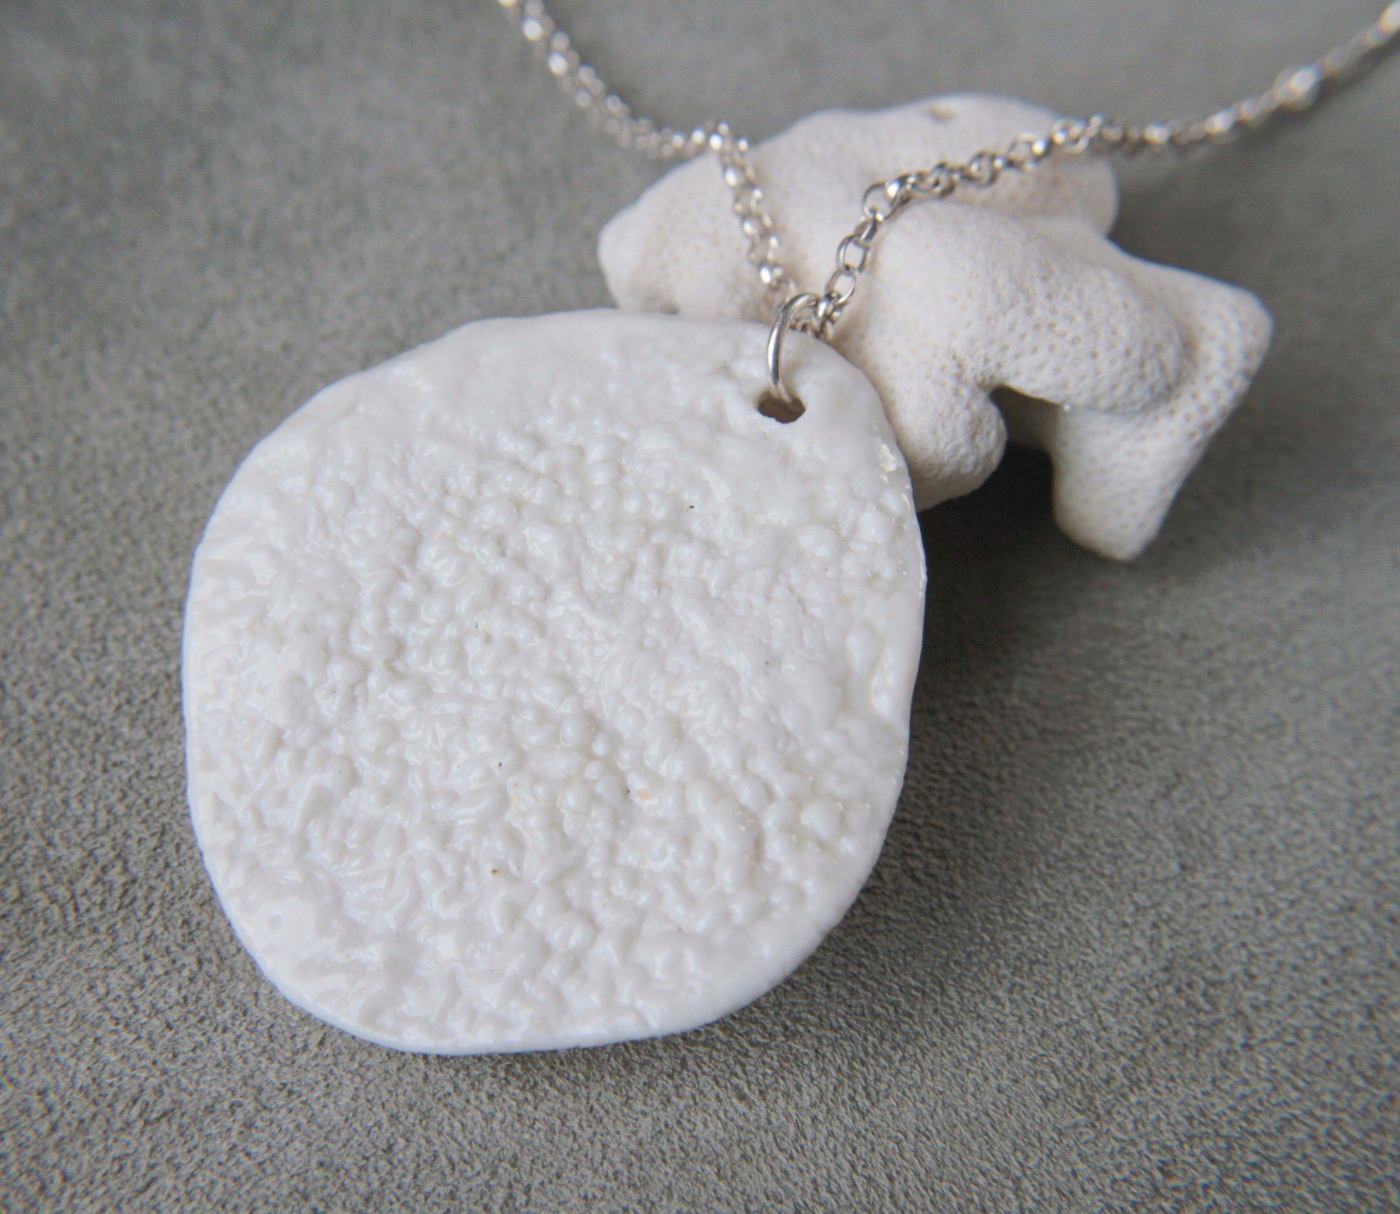 organically shaped ceramic necklace